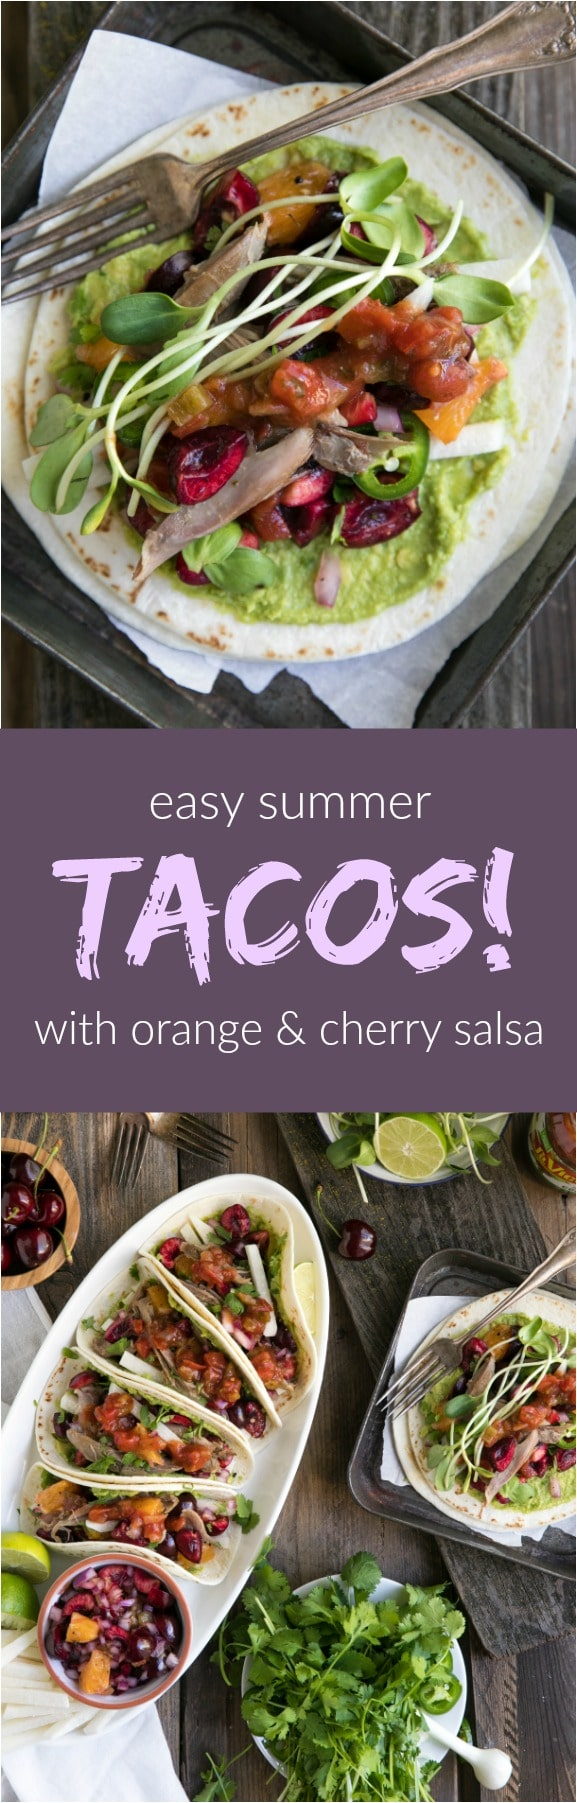 Easy Summer Tacos with Orange Cherry Salsa. Tacos are a California summer staple and one of my favorite foods. Today I'm celebrating delicious tacos, sweet summer and 100 years of the makers of LA VICTORIA® Brand with these amazing Summer Tacos with Orange Cherry Salsa. #ad #tacos #cherry #duck #healthyrecipes